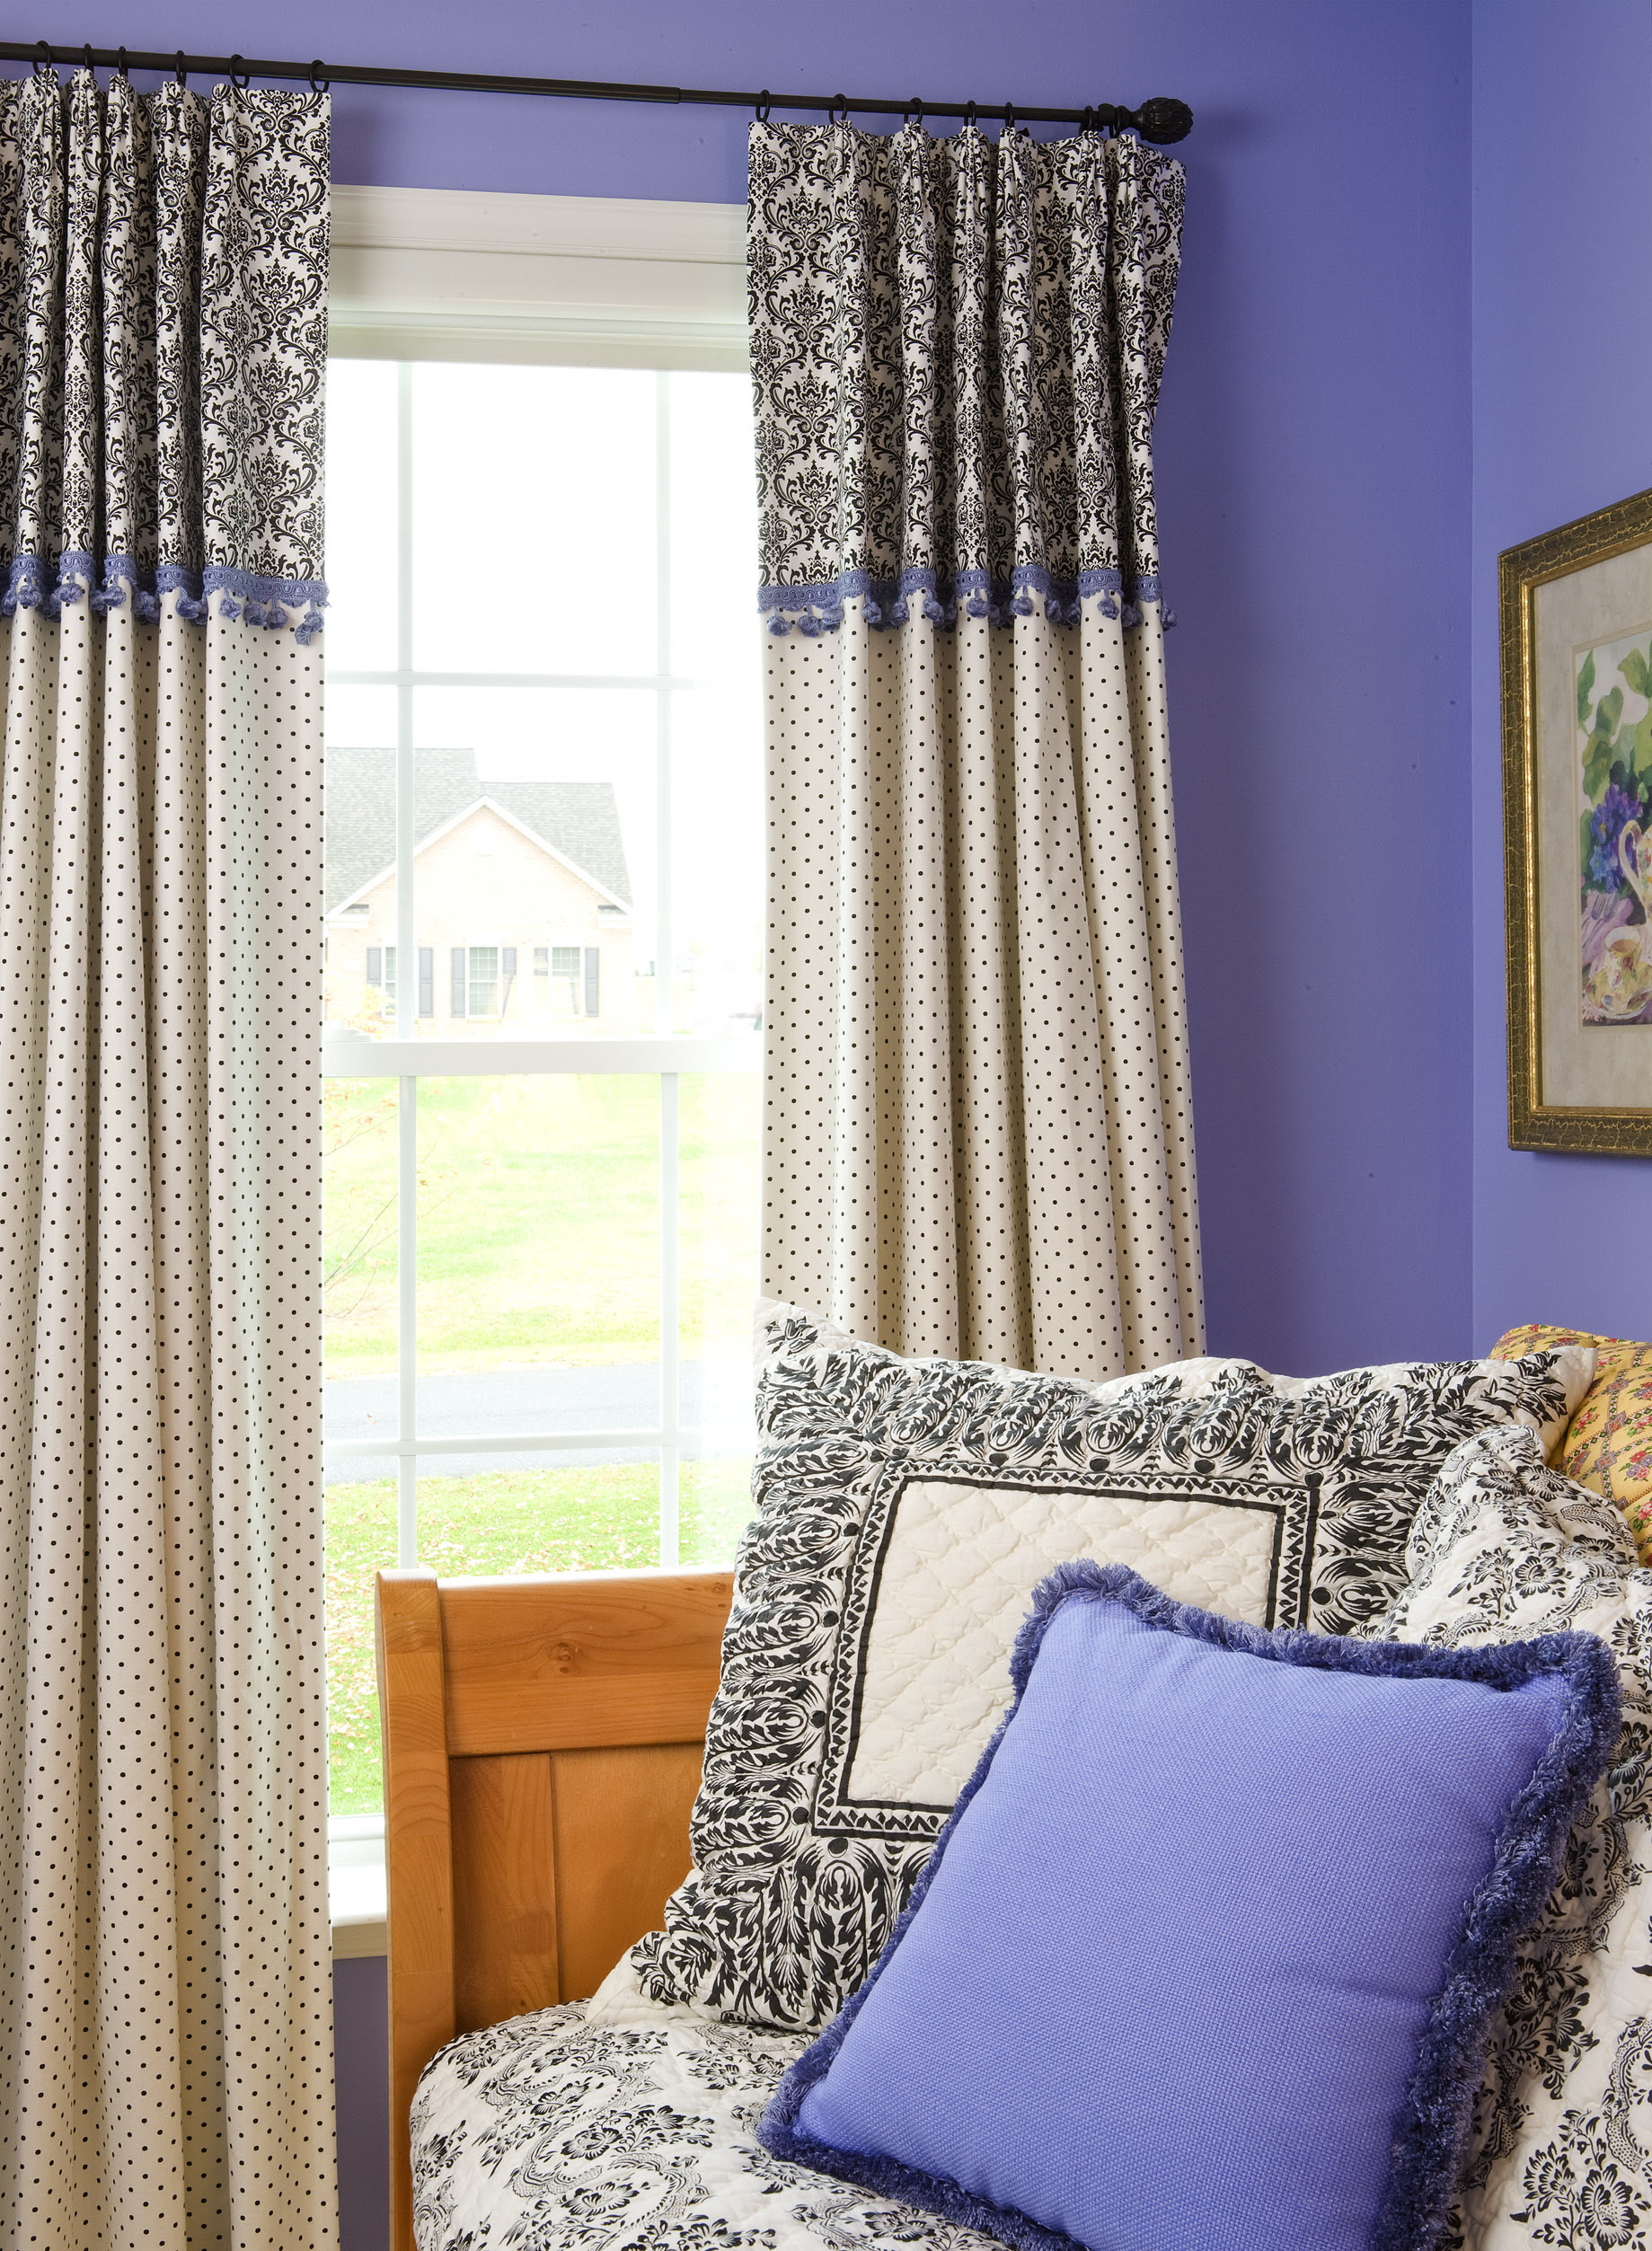 The ABC's of Decorating....T is for Terrific Window Treatment Tips ...